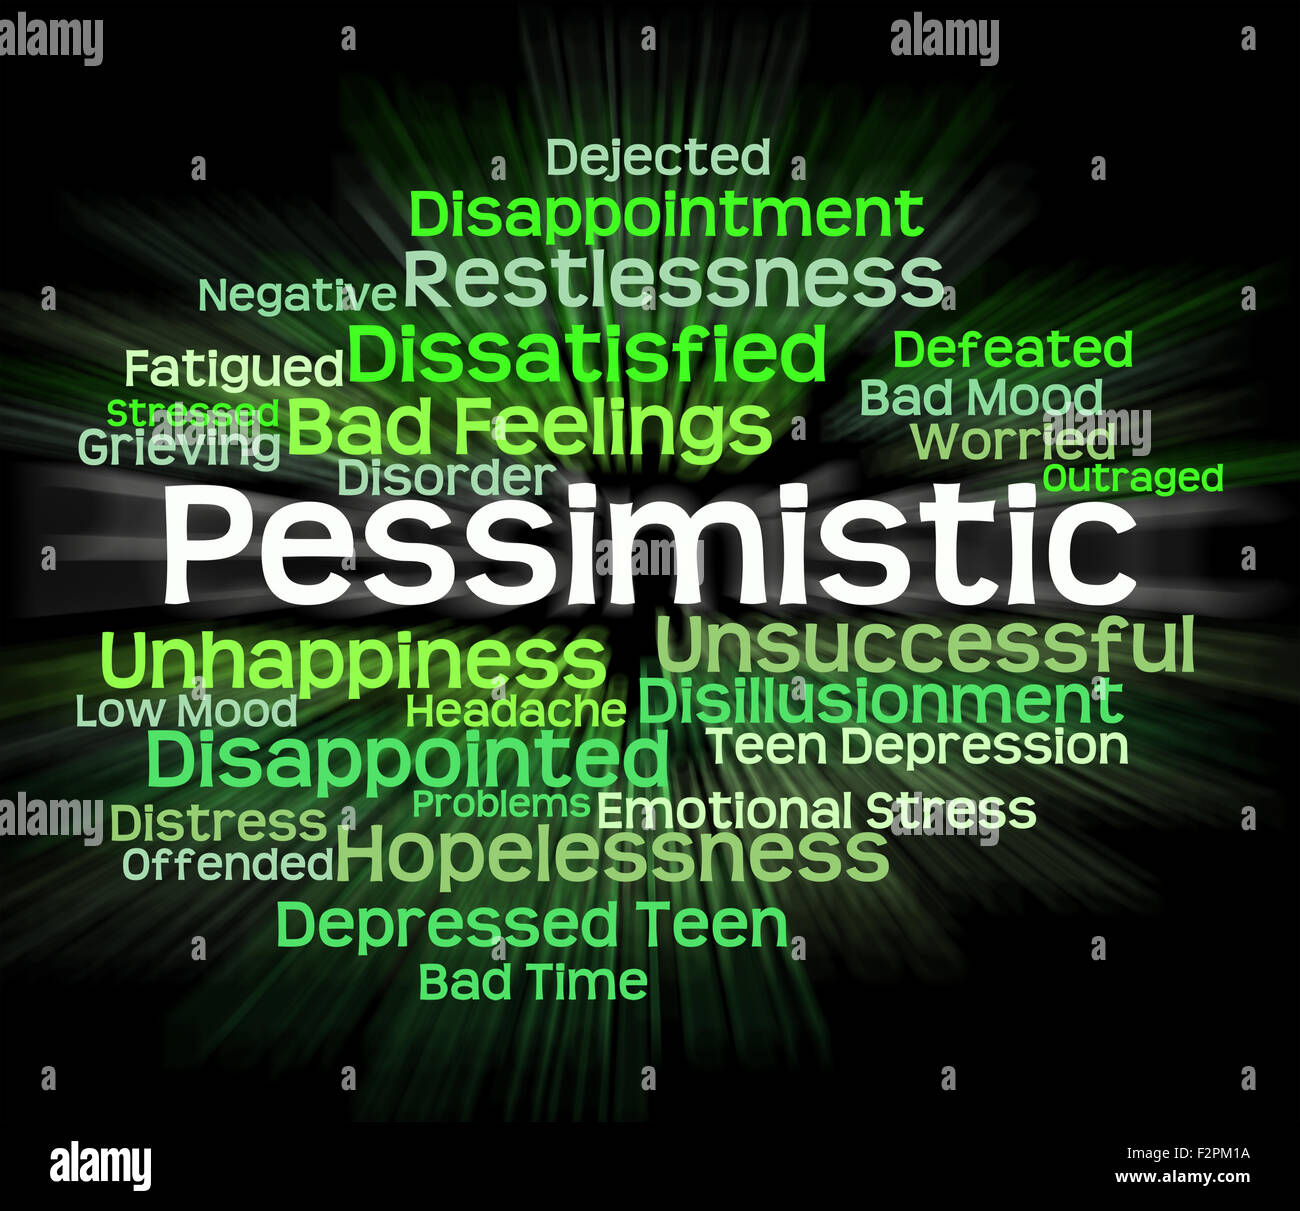 Pessimistic Word Meaning Fatalistic Words And Melancholy - Stock Image